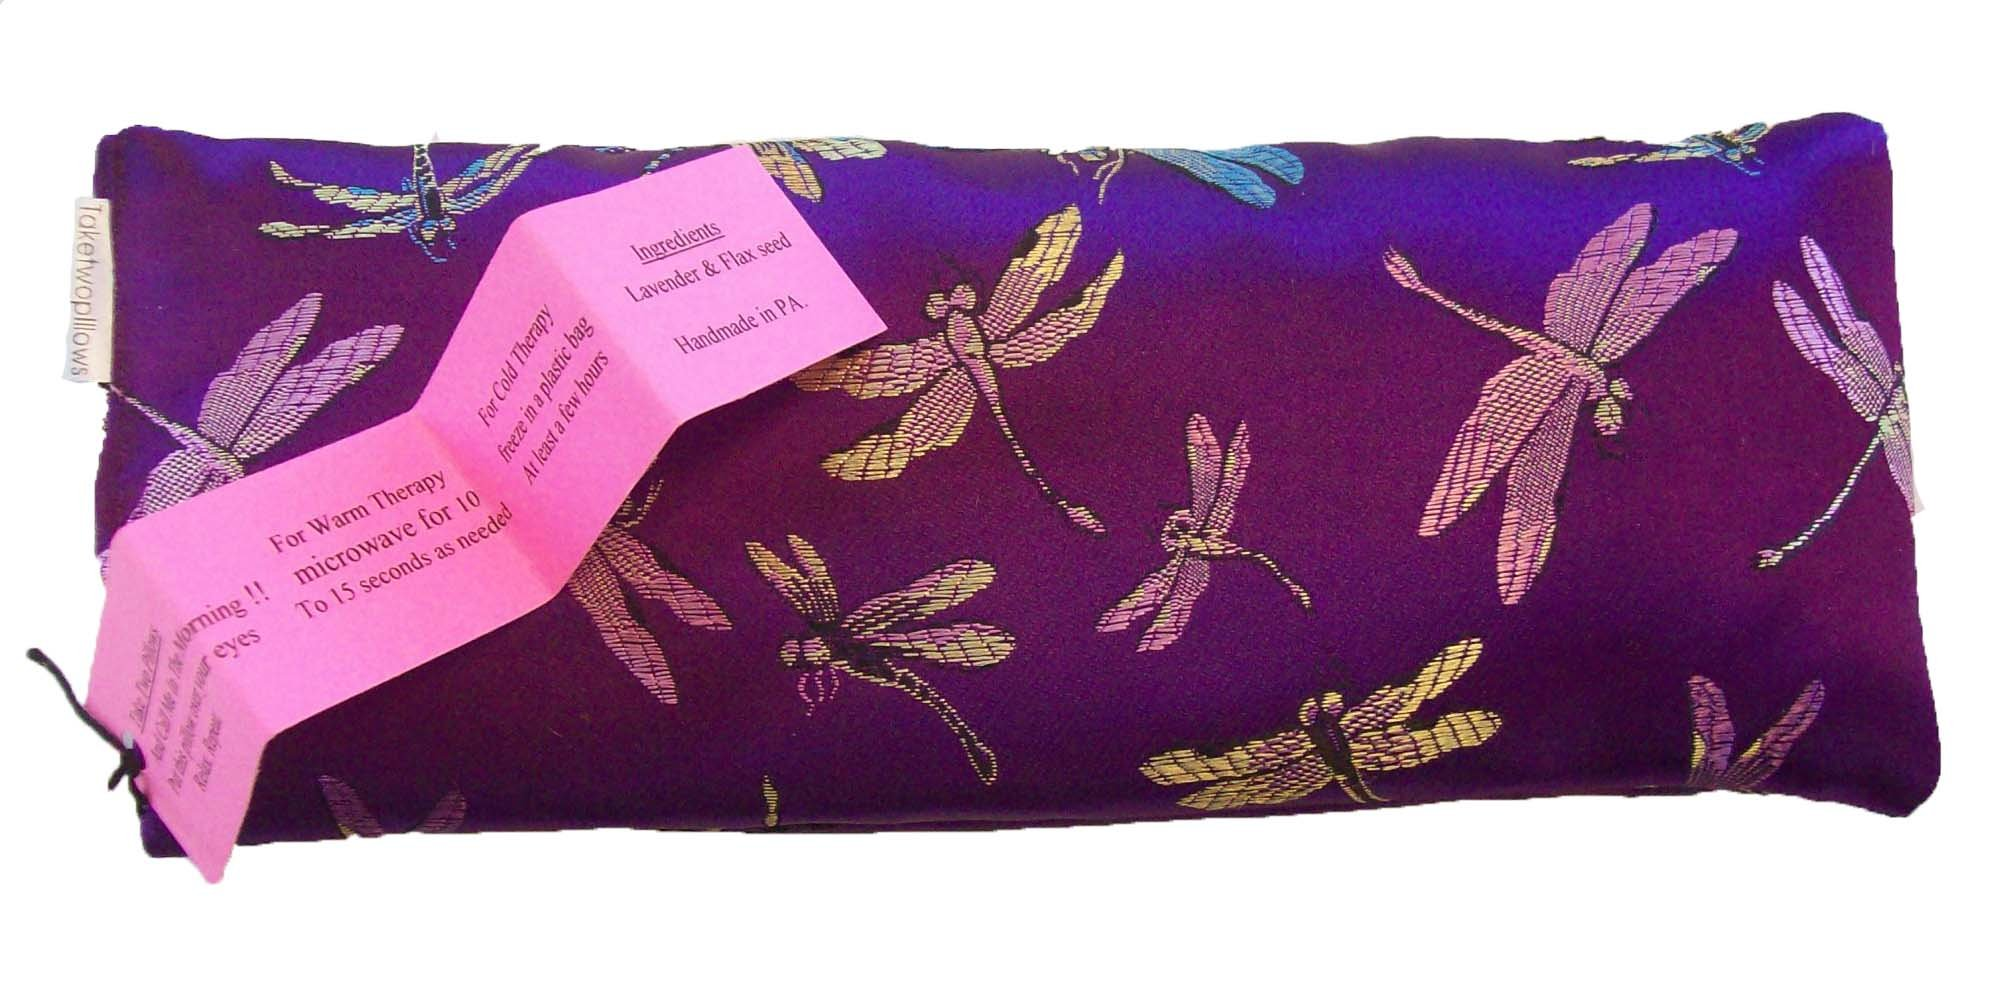 Flax Seed Eye Pillow with Lavender Buds and Matching Slip Cover